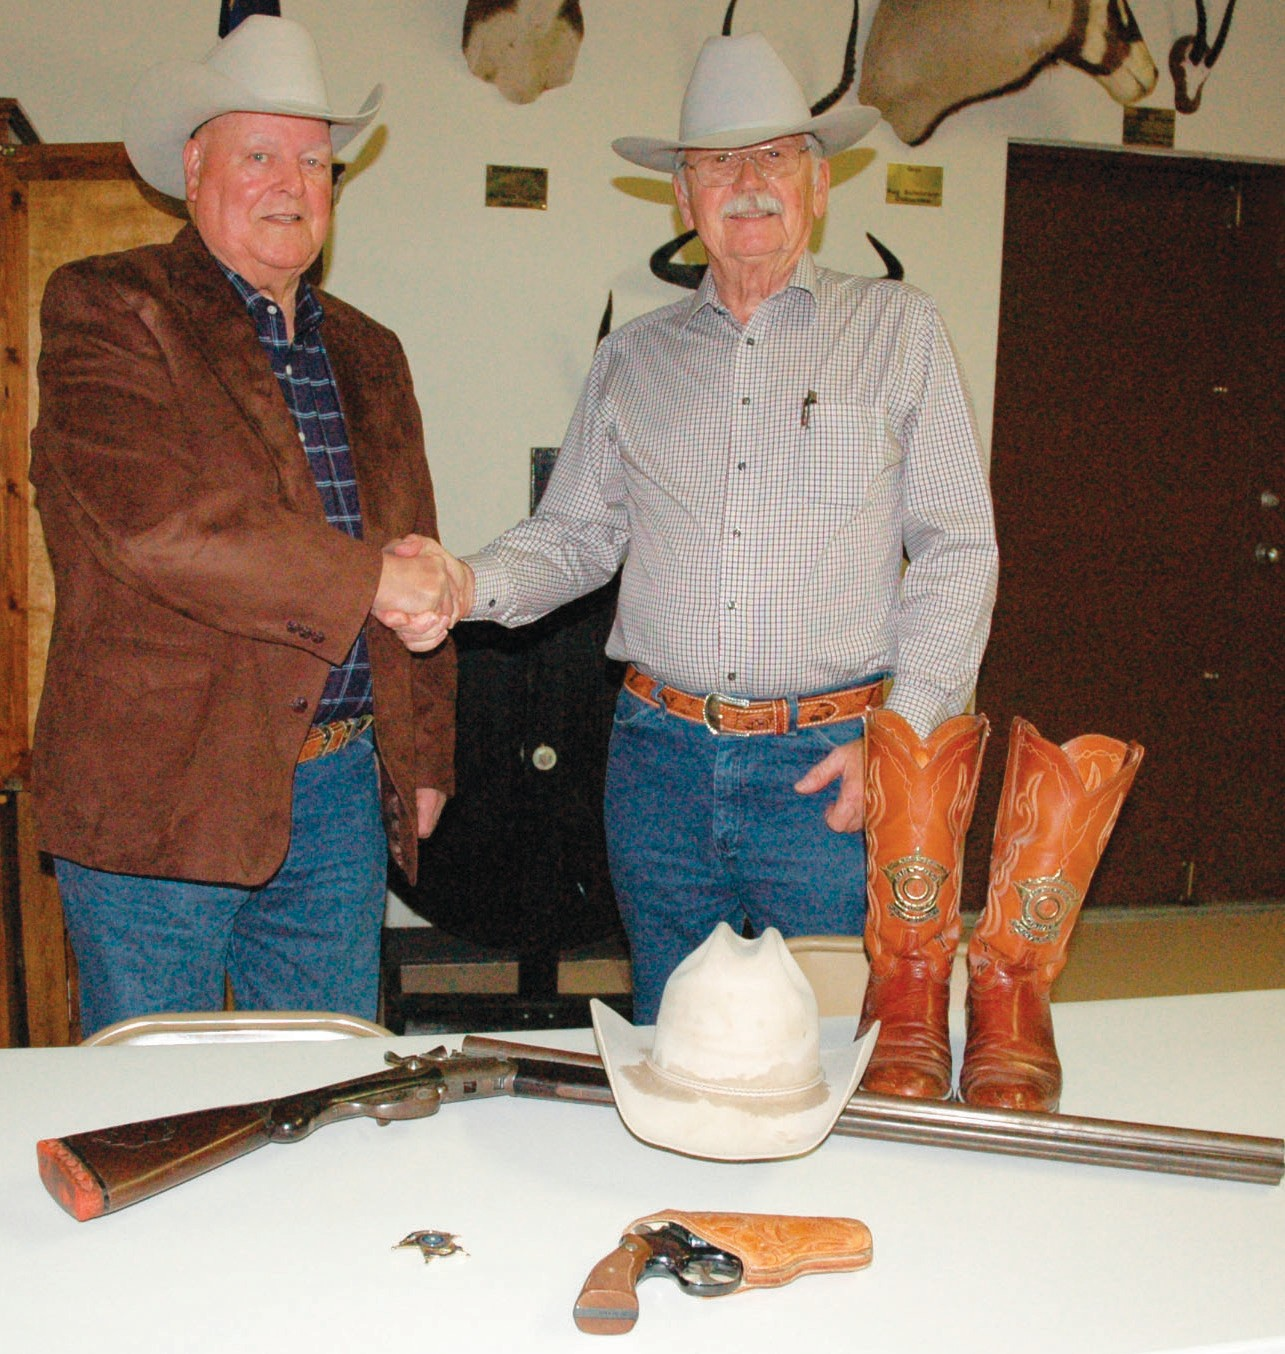 Former Atascosa Sheriff Tommy Williams officially turns over his memorabilia to Longhorn Museum Society President J. D. Kvapil. Included in the donation from Atascosa County's longest seated Sheriff to the museum are his original Stetson cowboy hat, custom boots, personalized badge, a pistol and a triple-barreled shotgun.